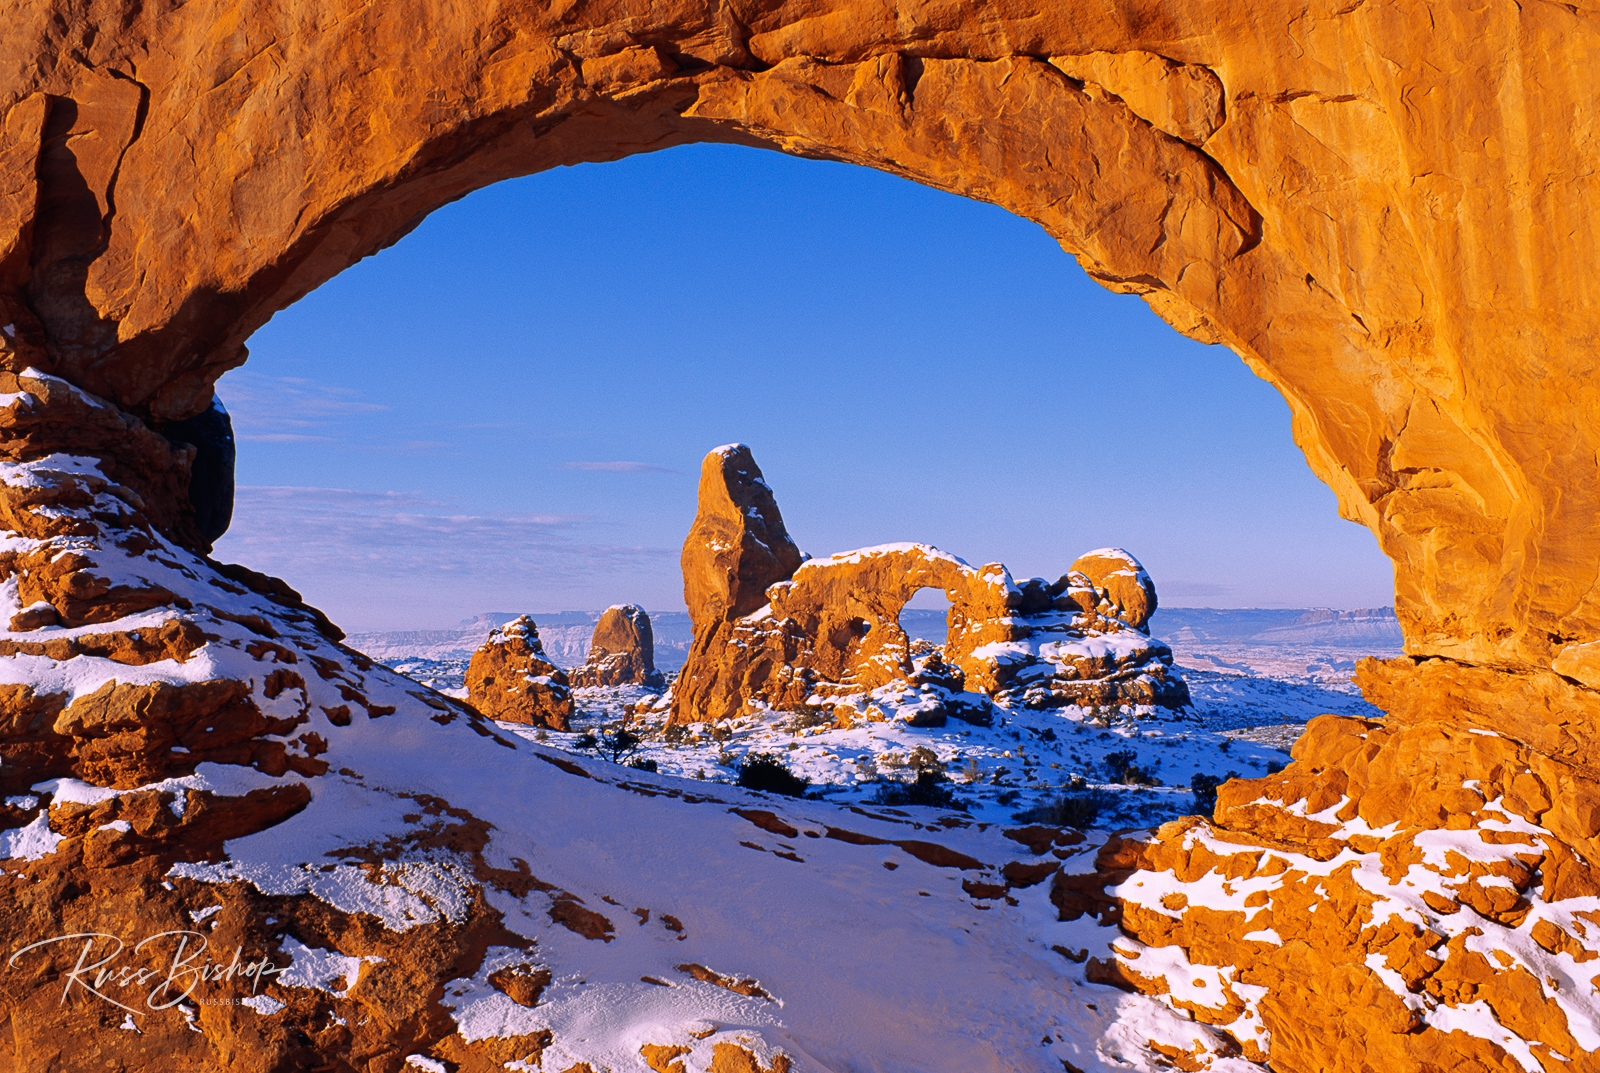 North Window framing Turret Arch in winter, Arches National Park, Utah